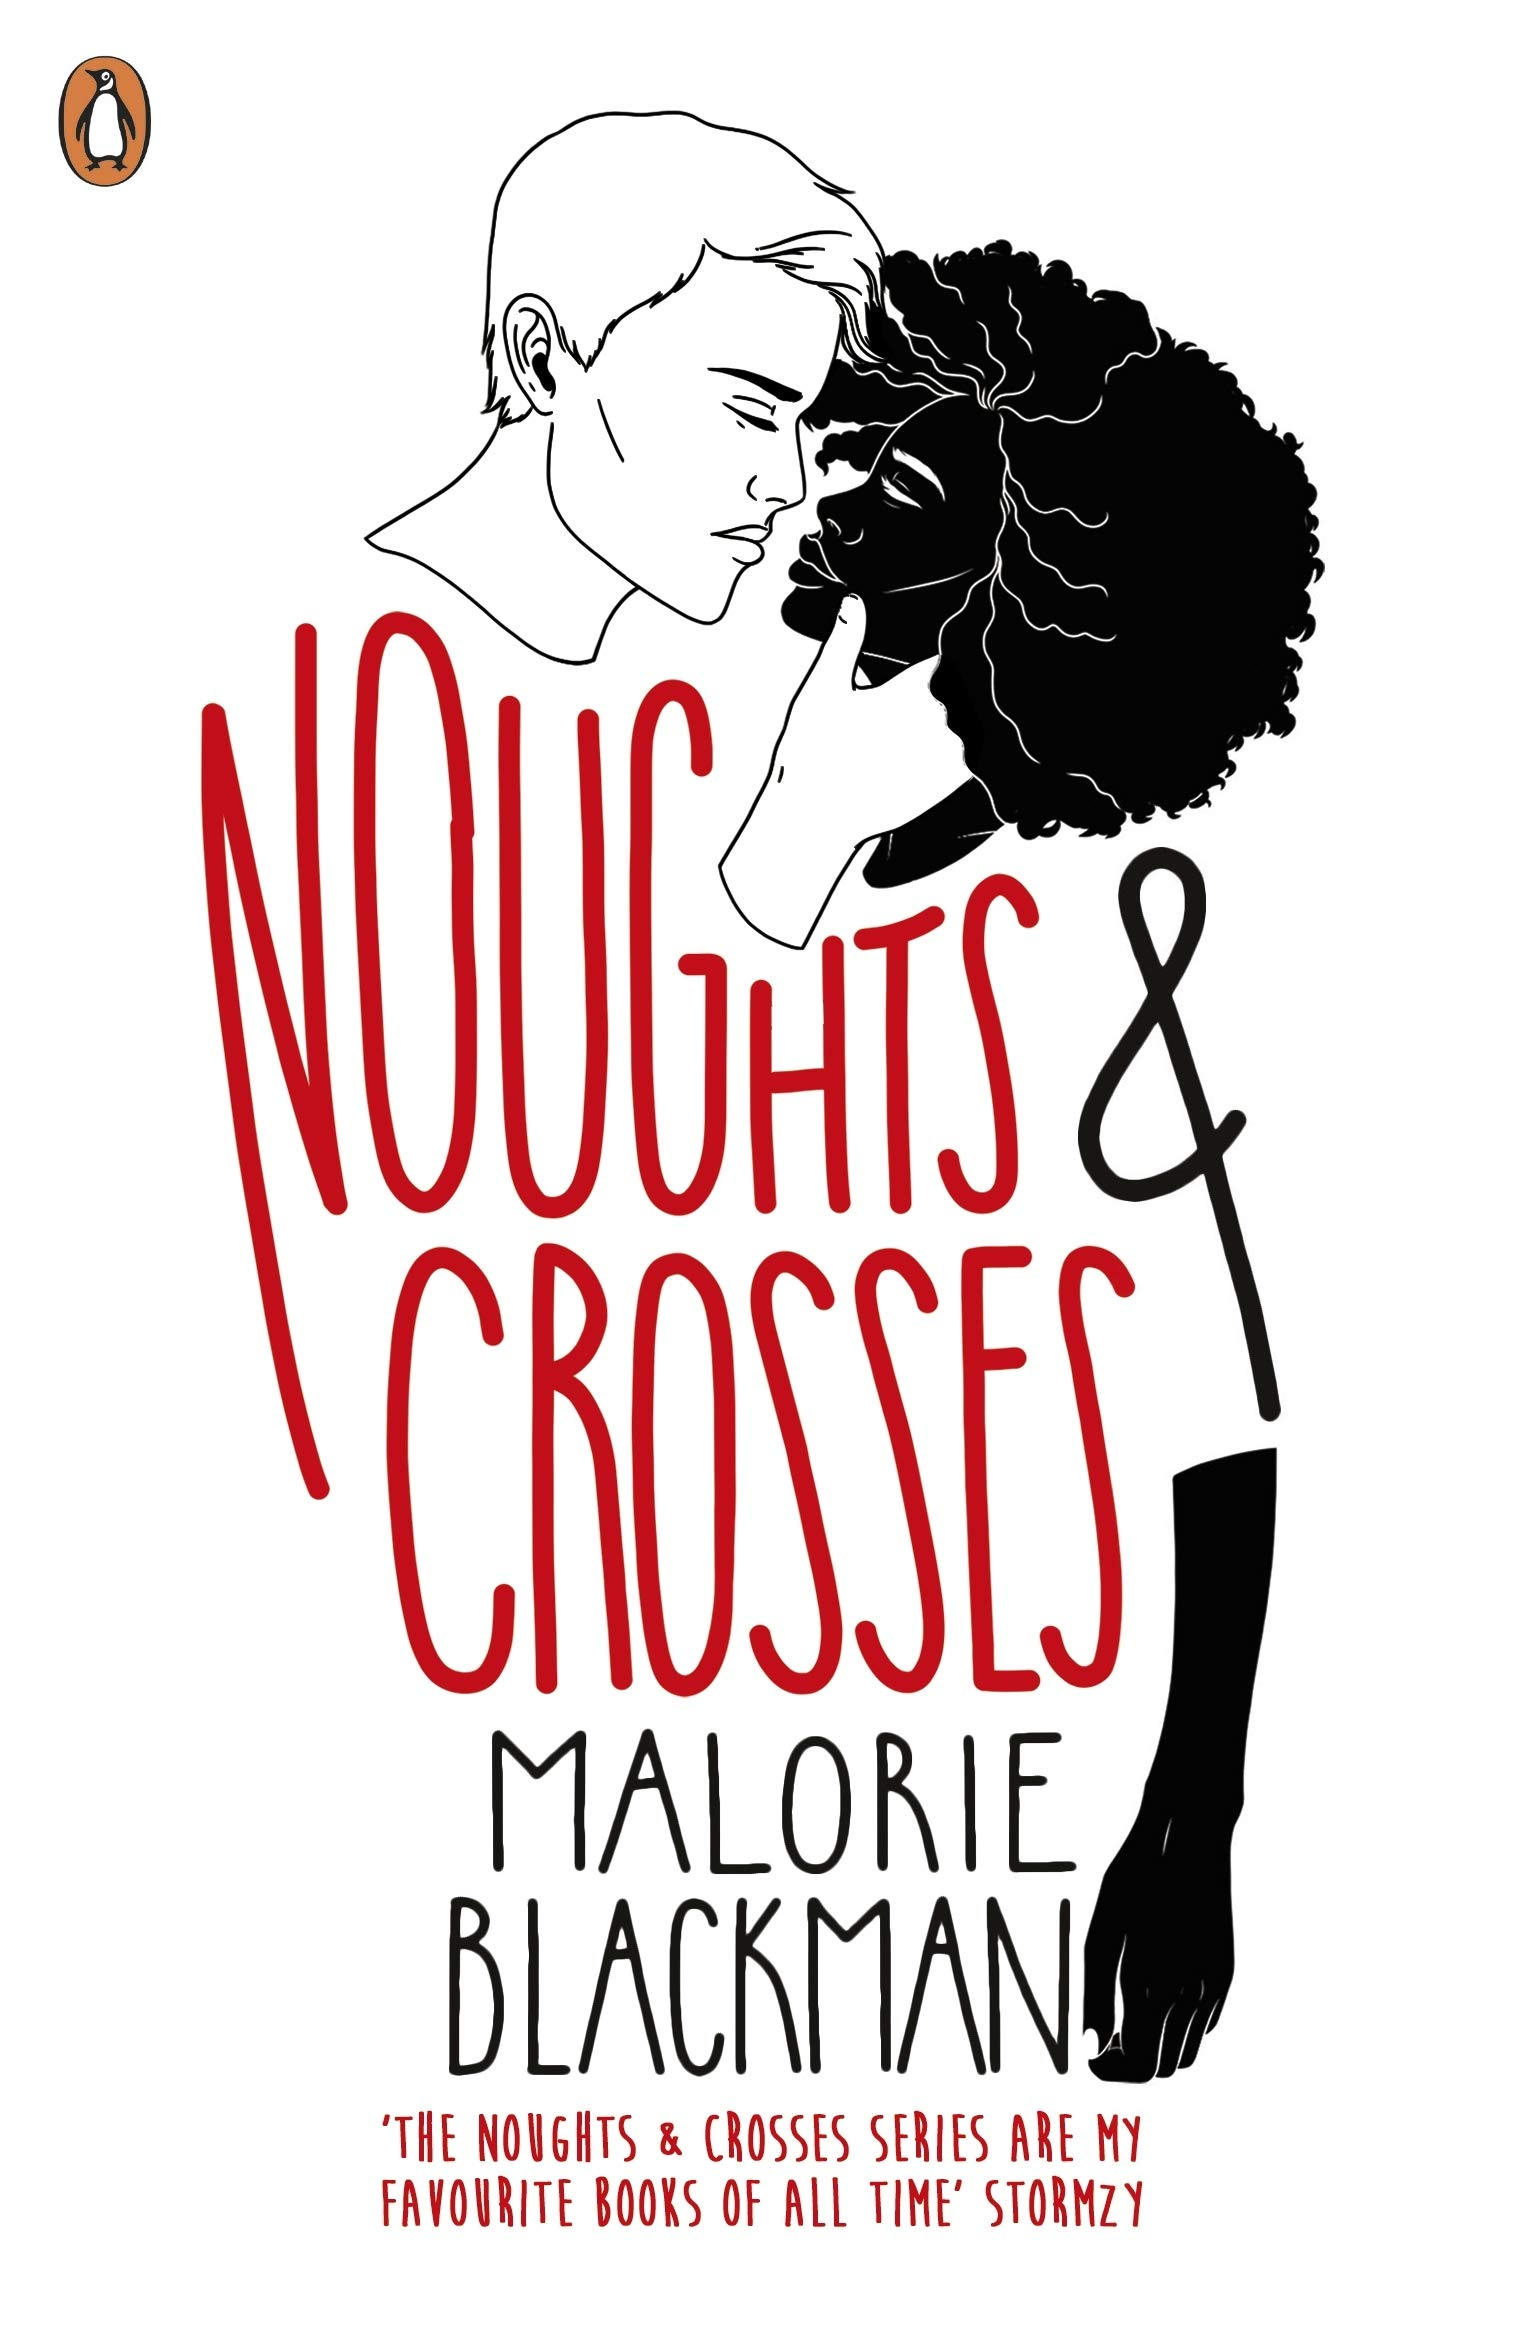 Noughts & Crosses (Noughts and Crosses): Amazon.co.uk: Blackman ...